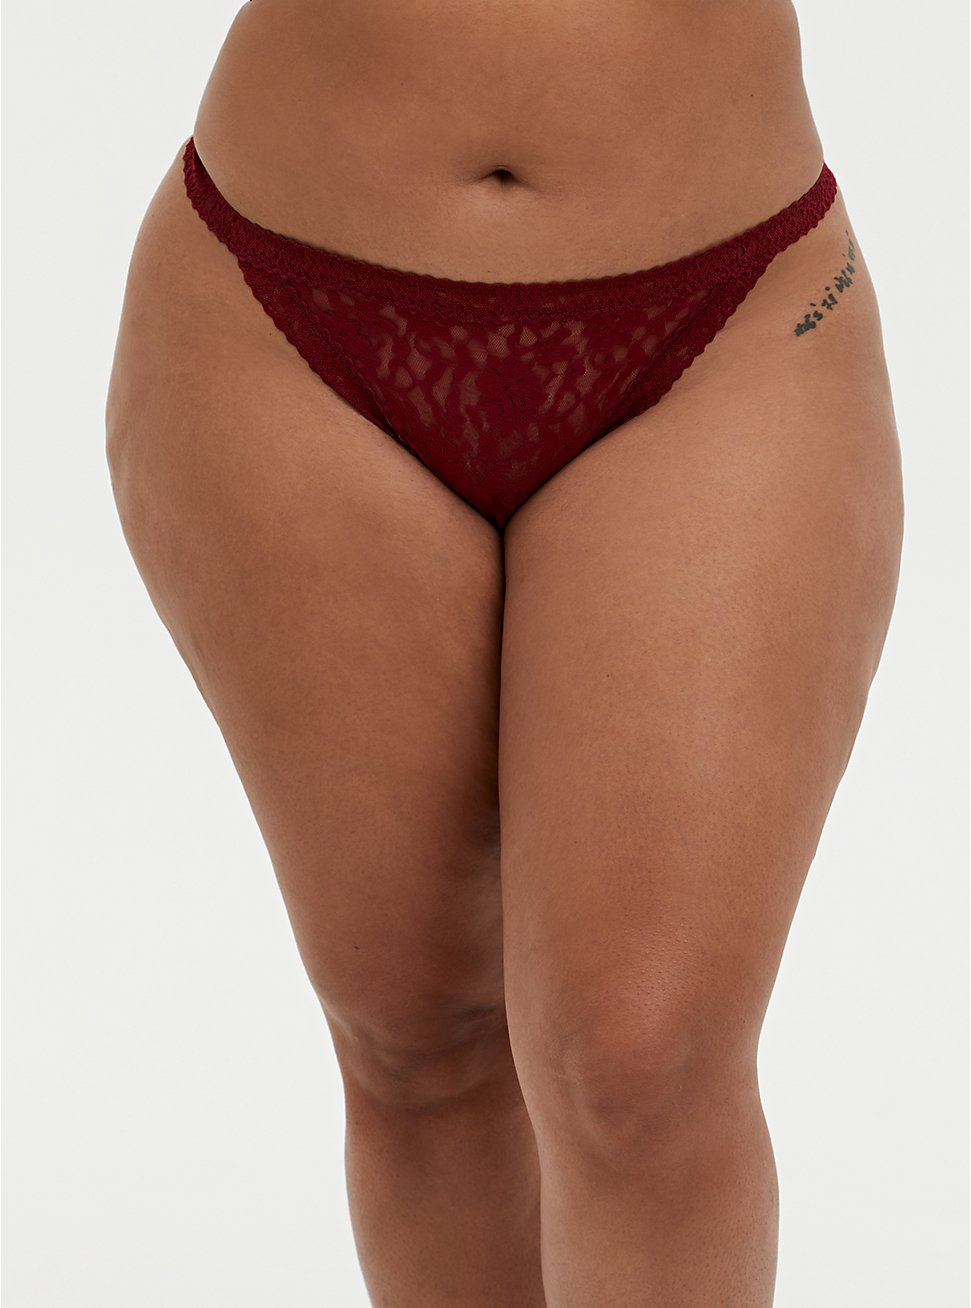 Dark Red Lace G-String Panty, BIKING RED, hi-res